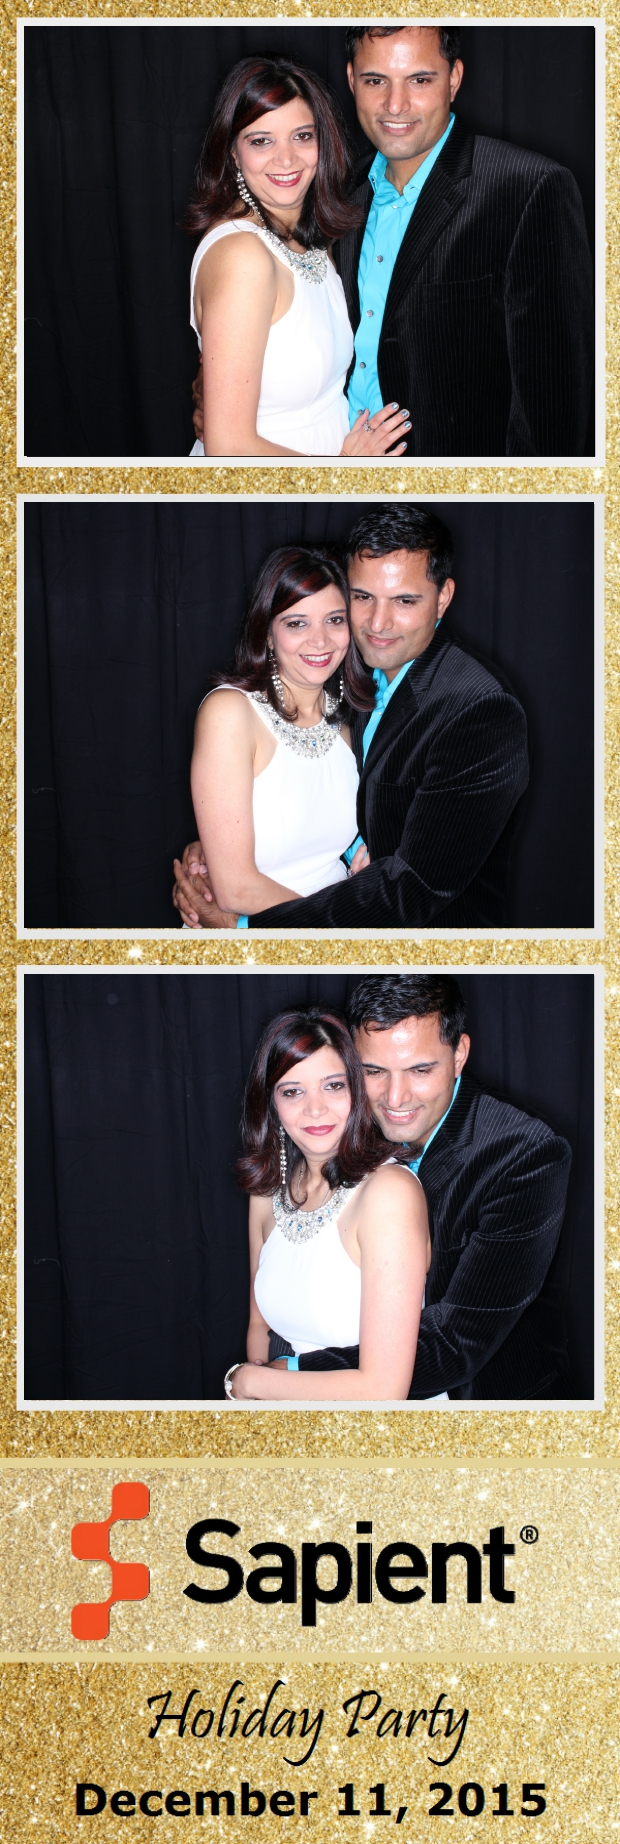 Guest House Events Photo Booth Sapient Holiday Party (34).jpg